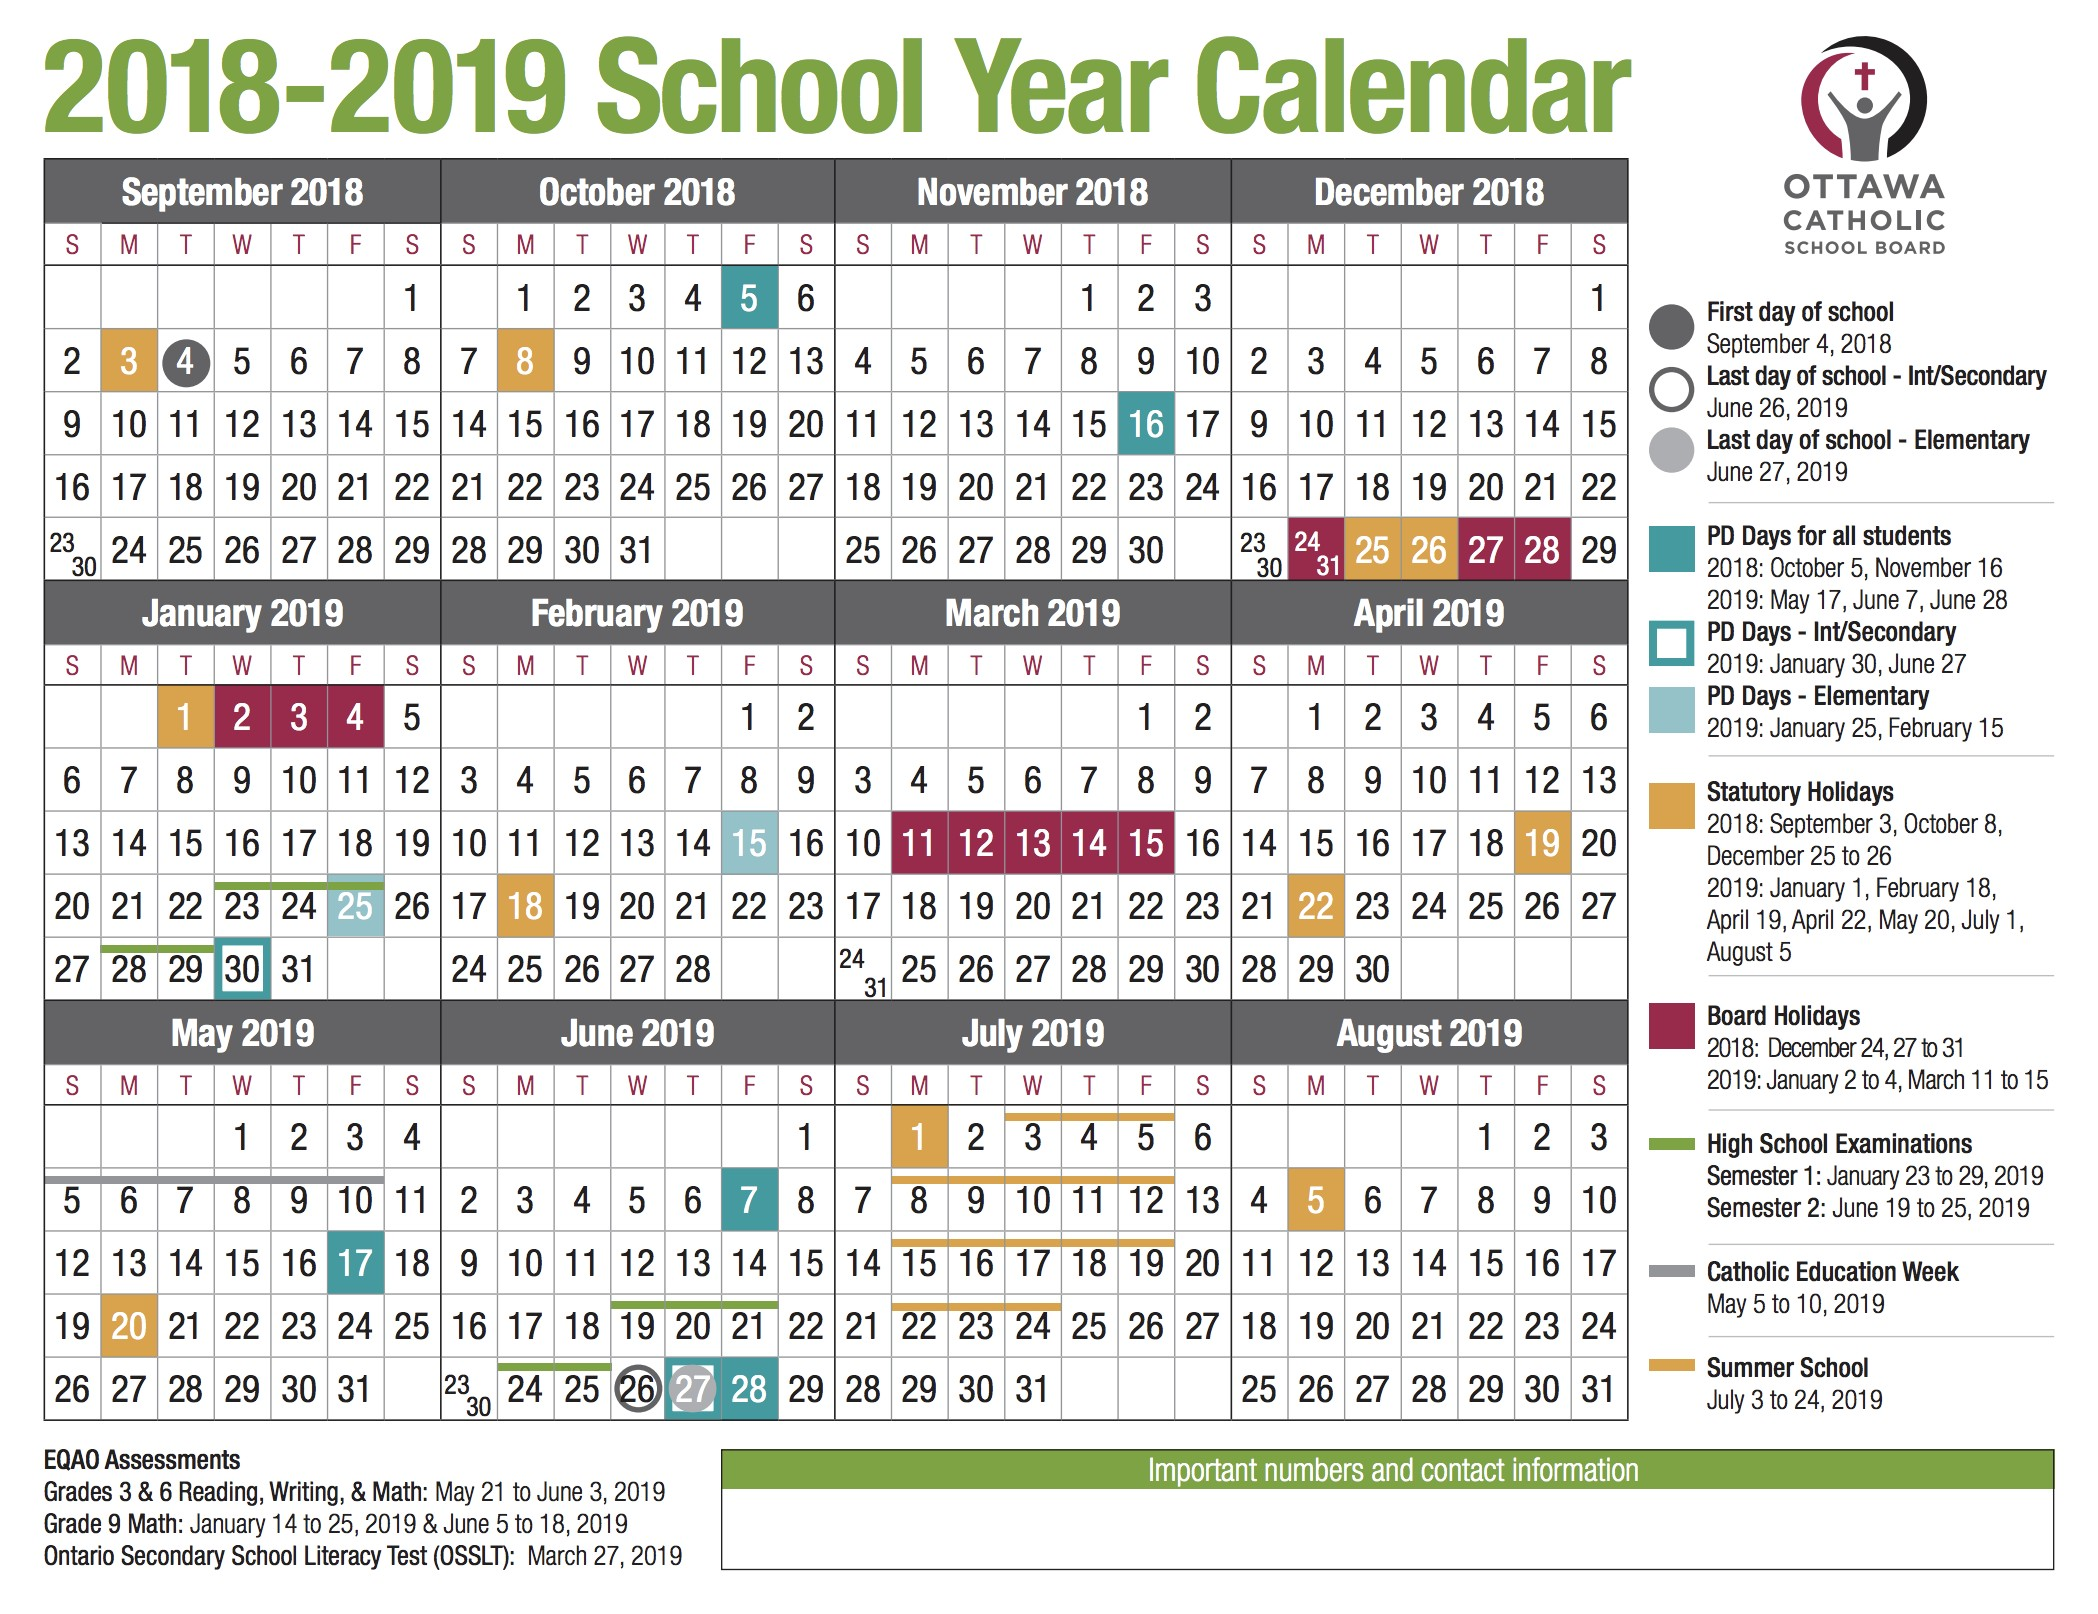 Calendar January to March 2019 Más Arriba-a-fecha School Year Calendar From the Ocsb Of Calendar January to March 2019 Más Recientes Petersburg Library